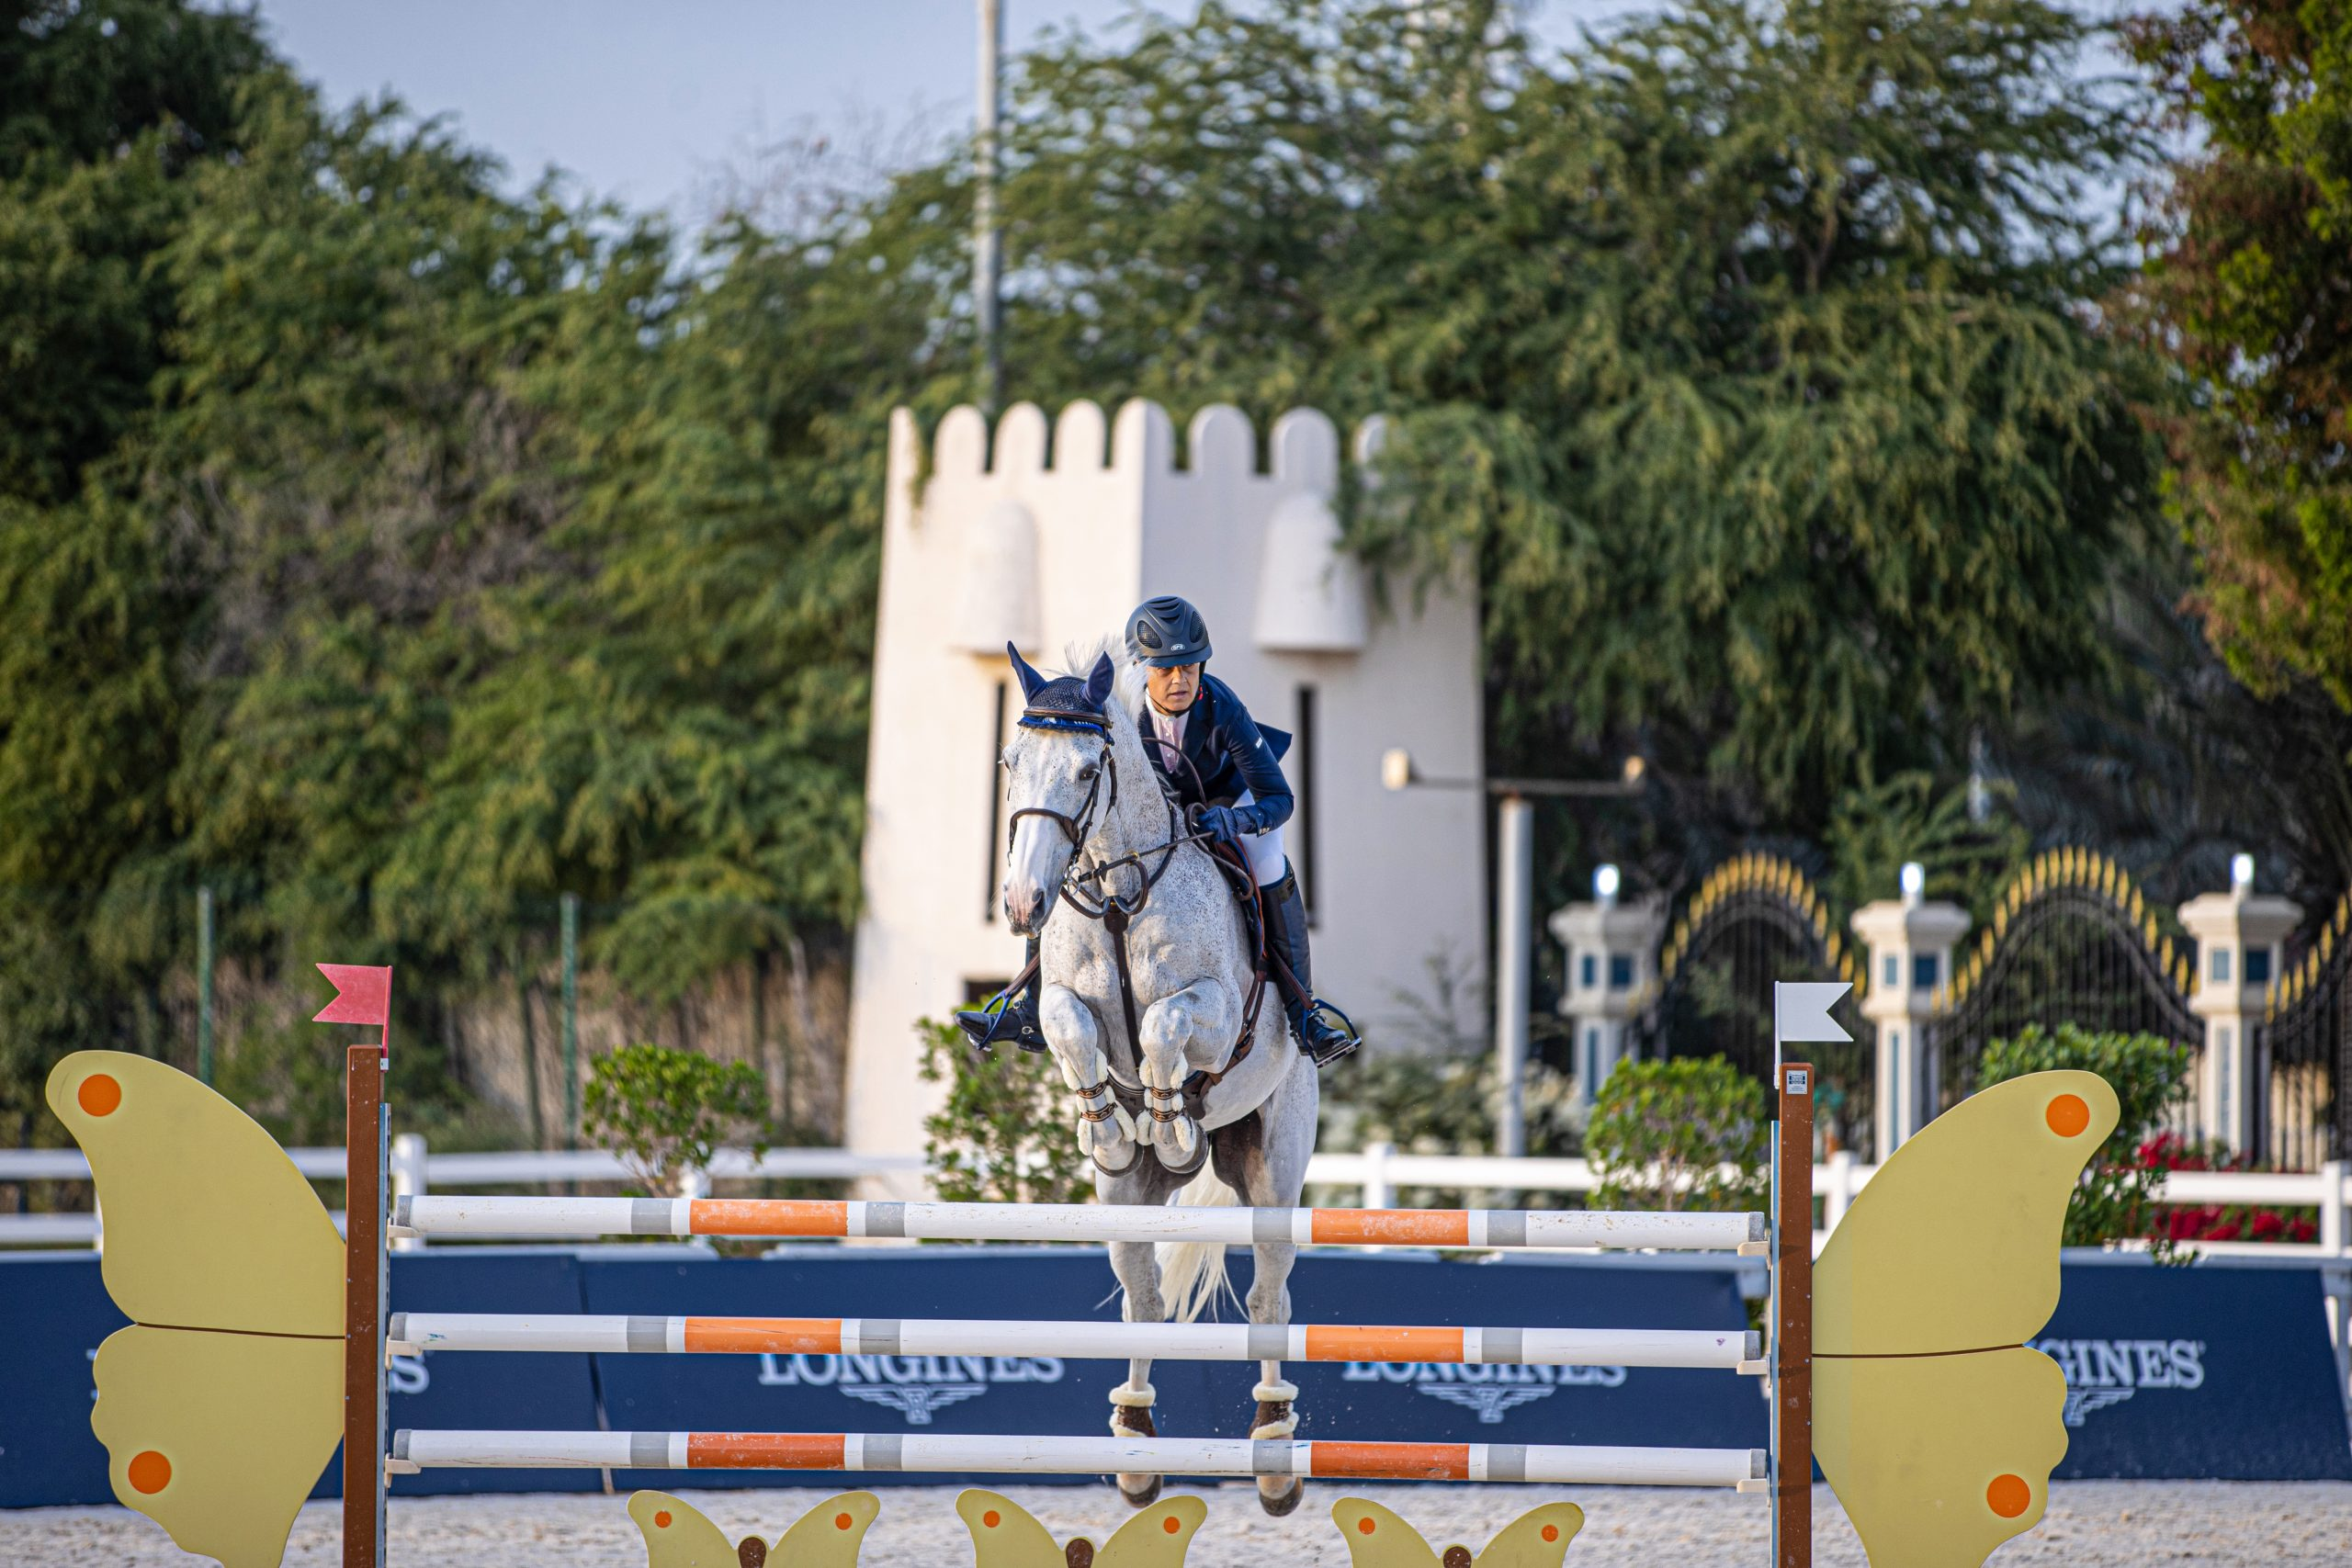 https://sport360.com/article/other/345904/eighth-edition-of-fbma-international-show-jumping-cup-wraps-up